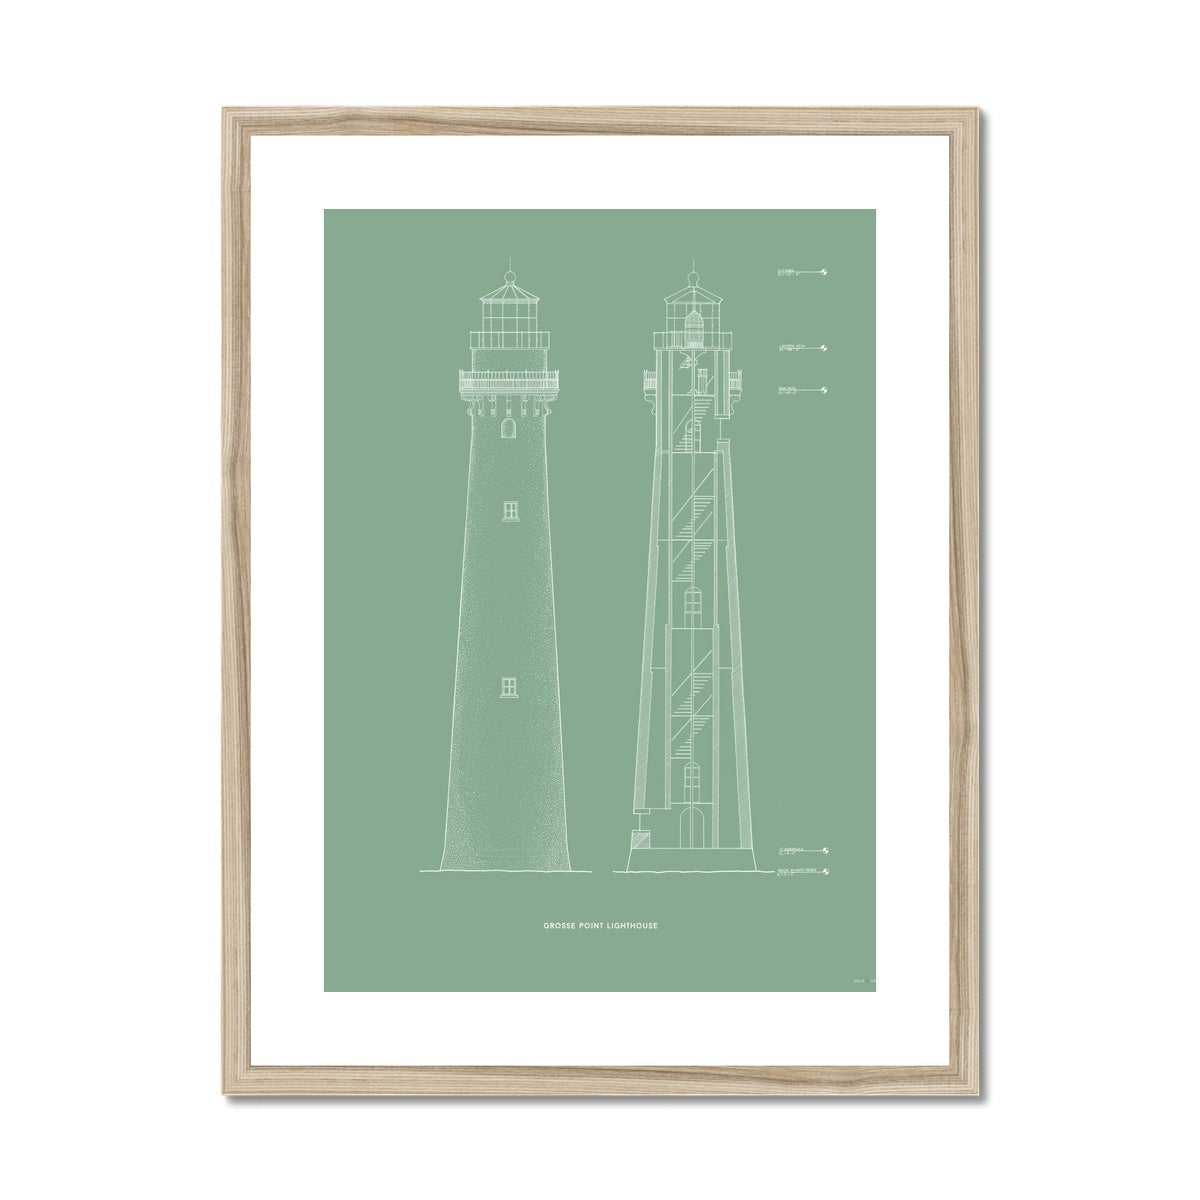 Grosse Point Lighthouse - East Elevation and Cross Section - Green -  Framed & Mounted Print